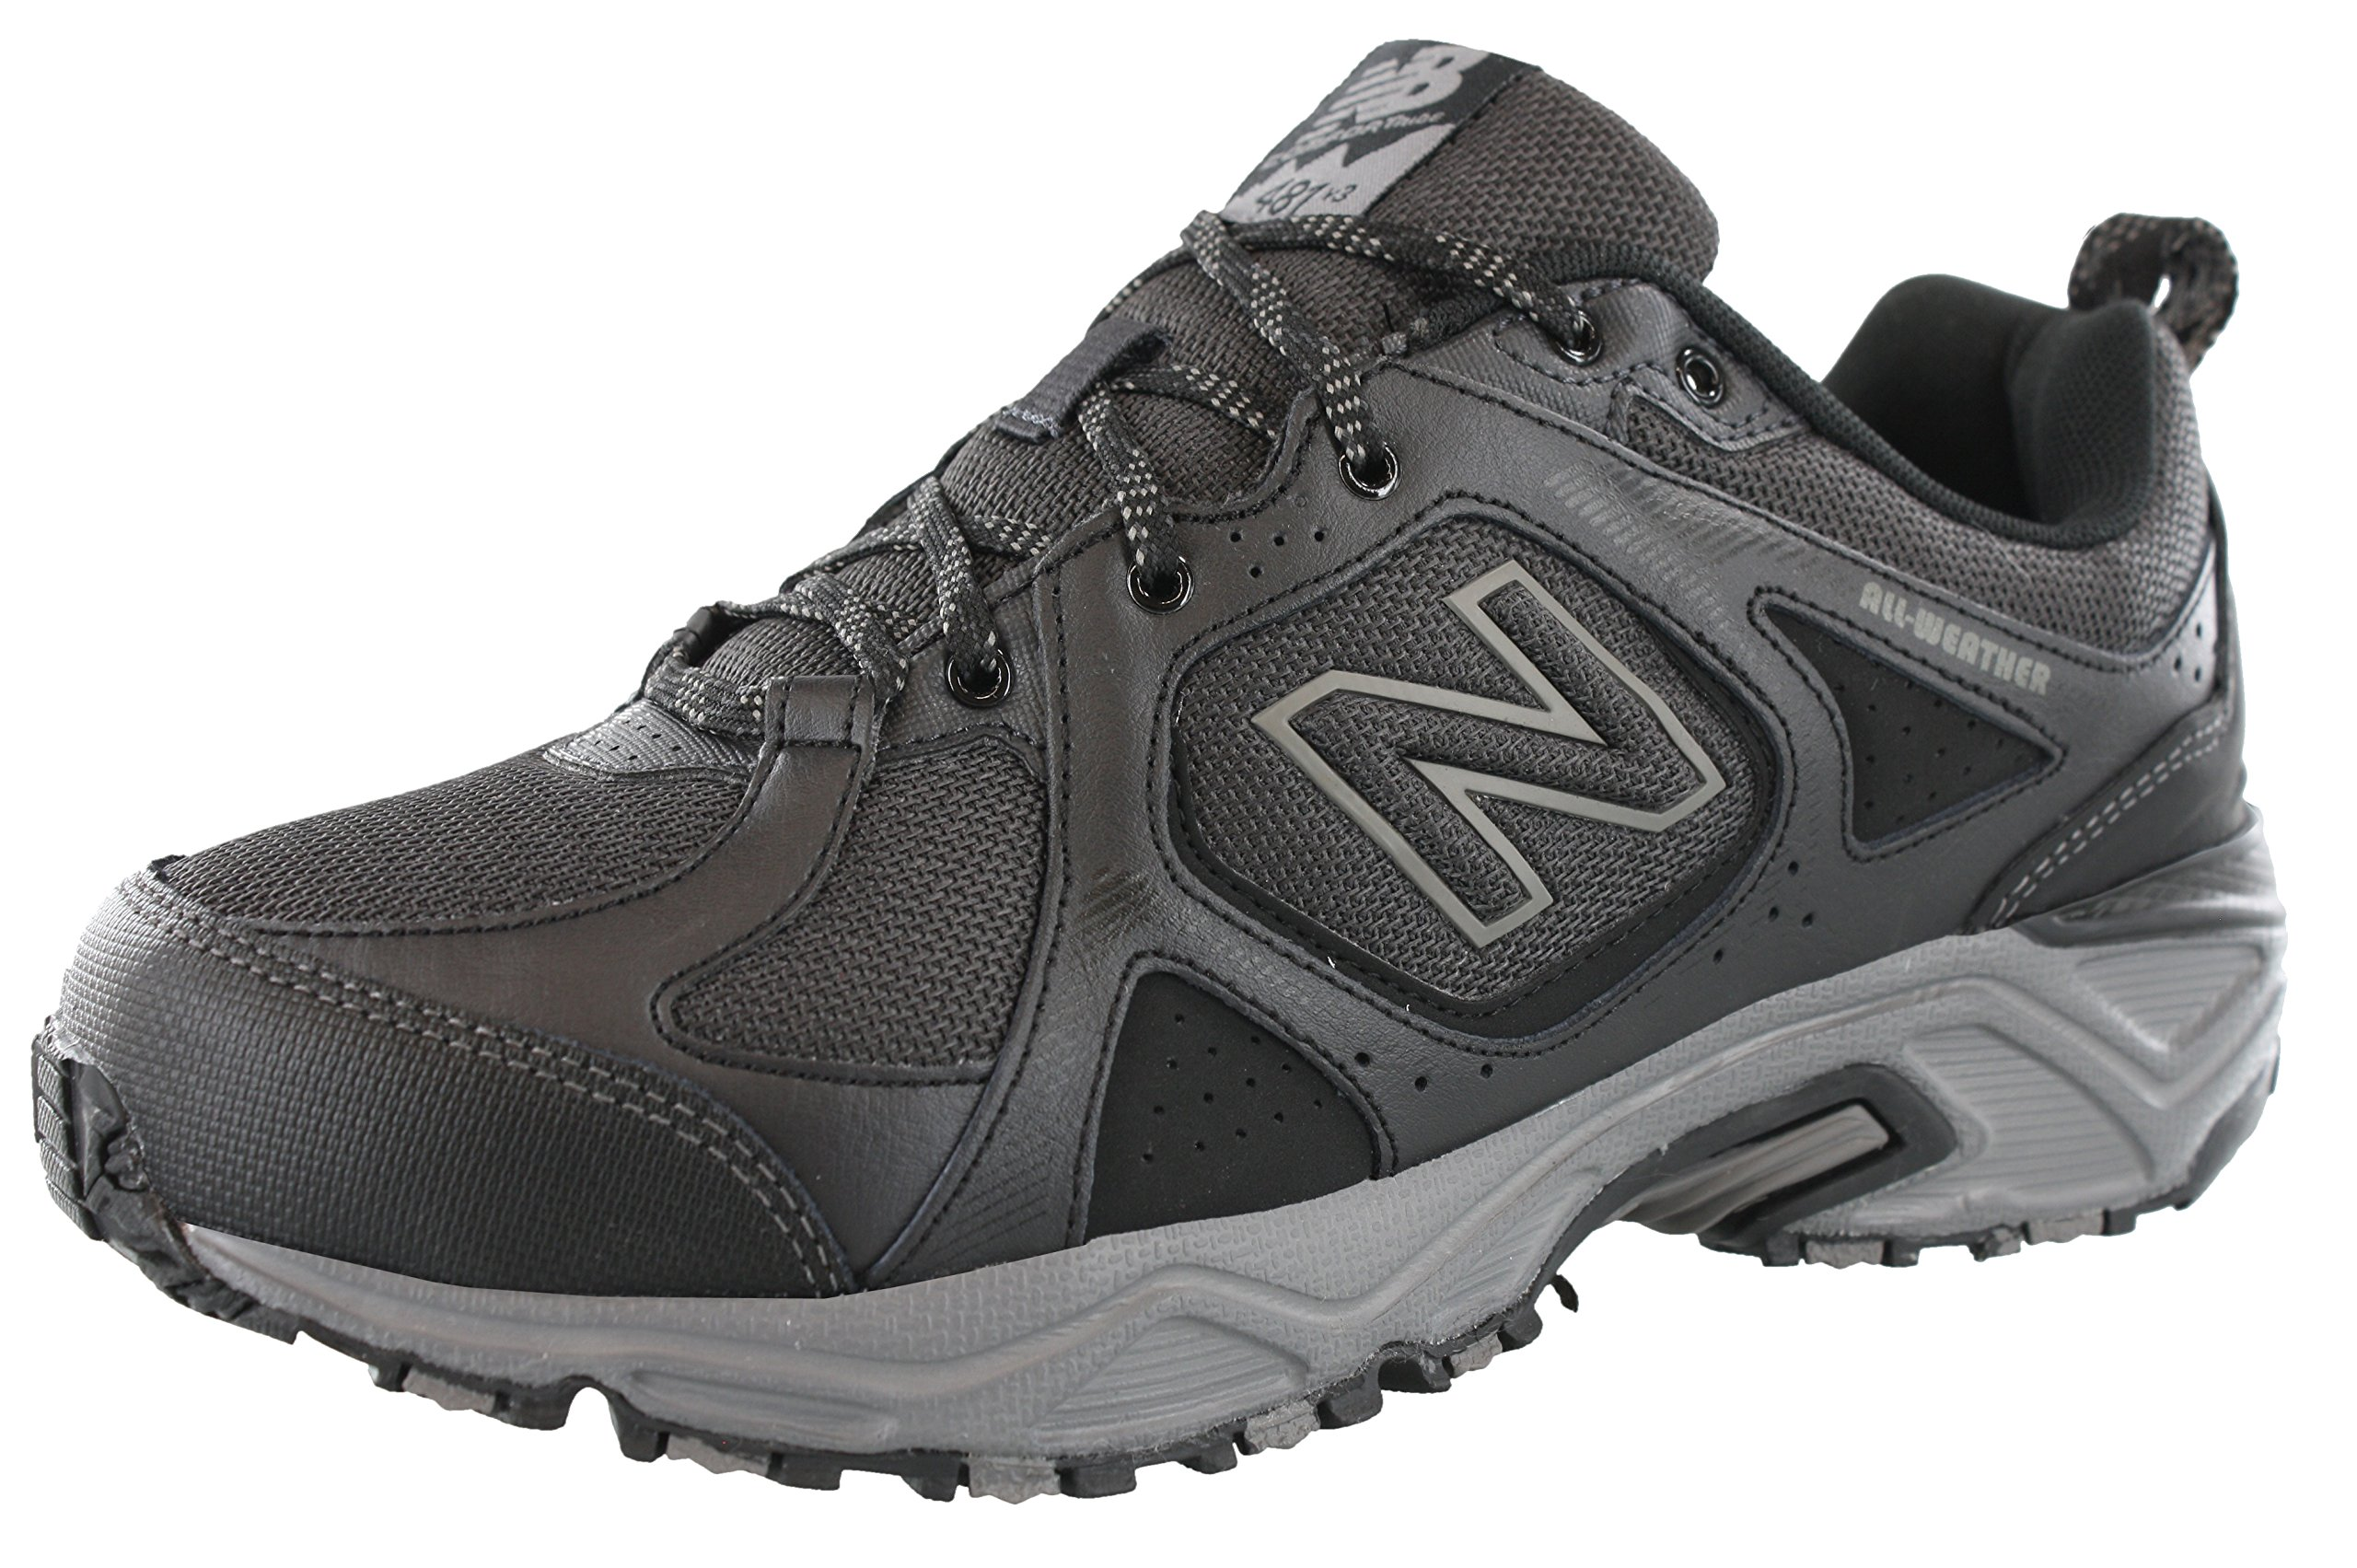 New Balance Men's 481V3 Water Resistant Cushioning Trail Running Shoe, Black/Grey, 10.5 4E US by New Balance